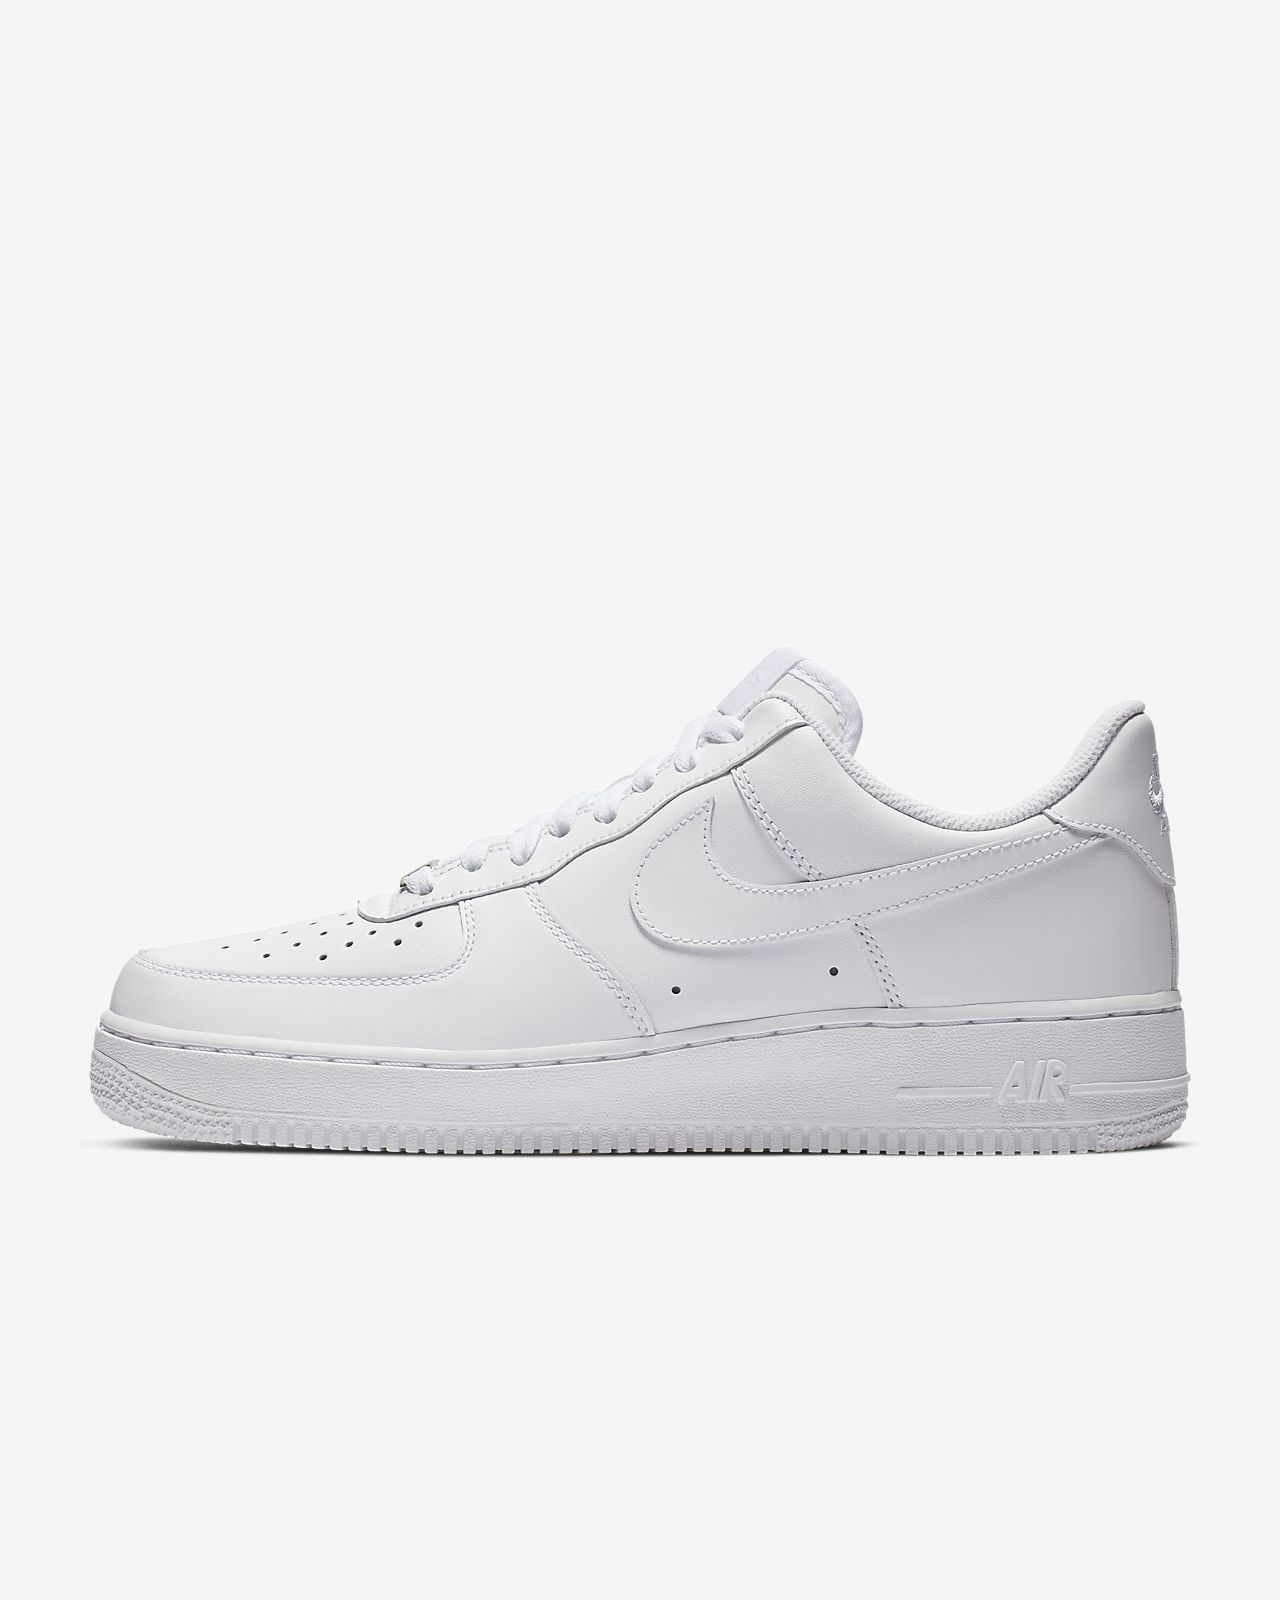 8701608962d6 Nike Air Force 1  07 Women s Shoe. Nike.com AU